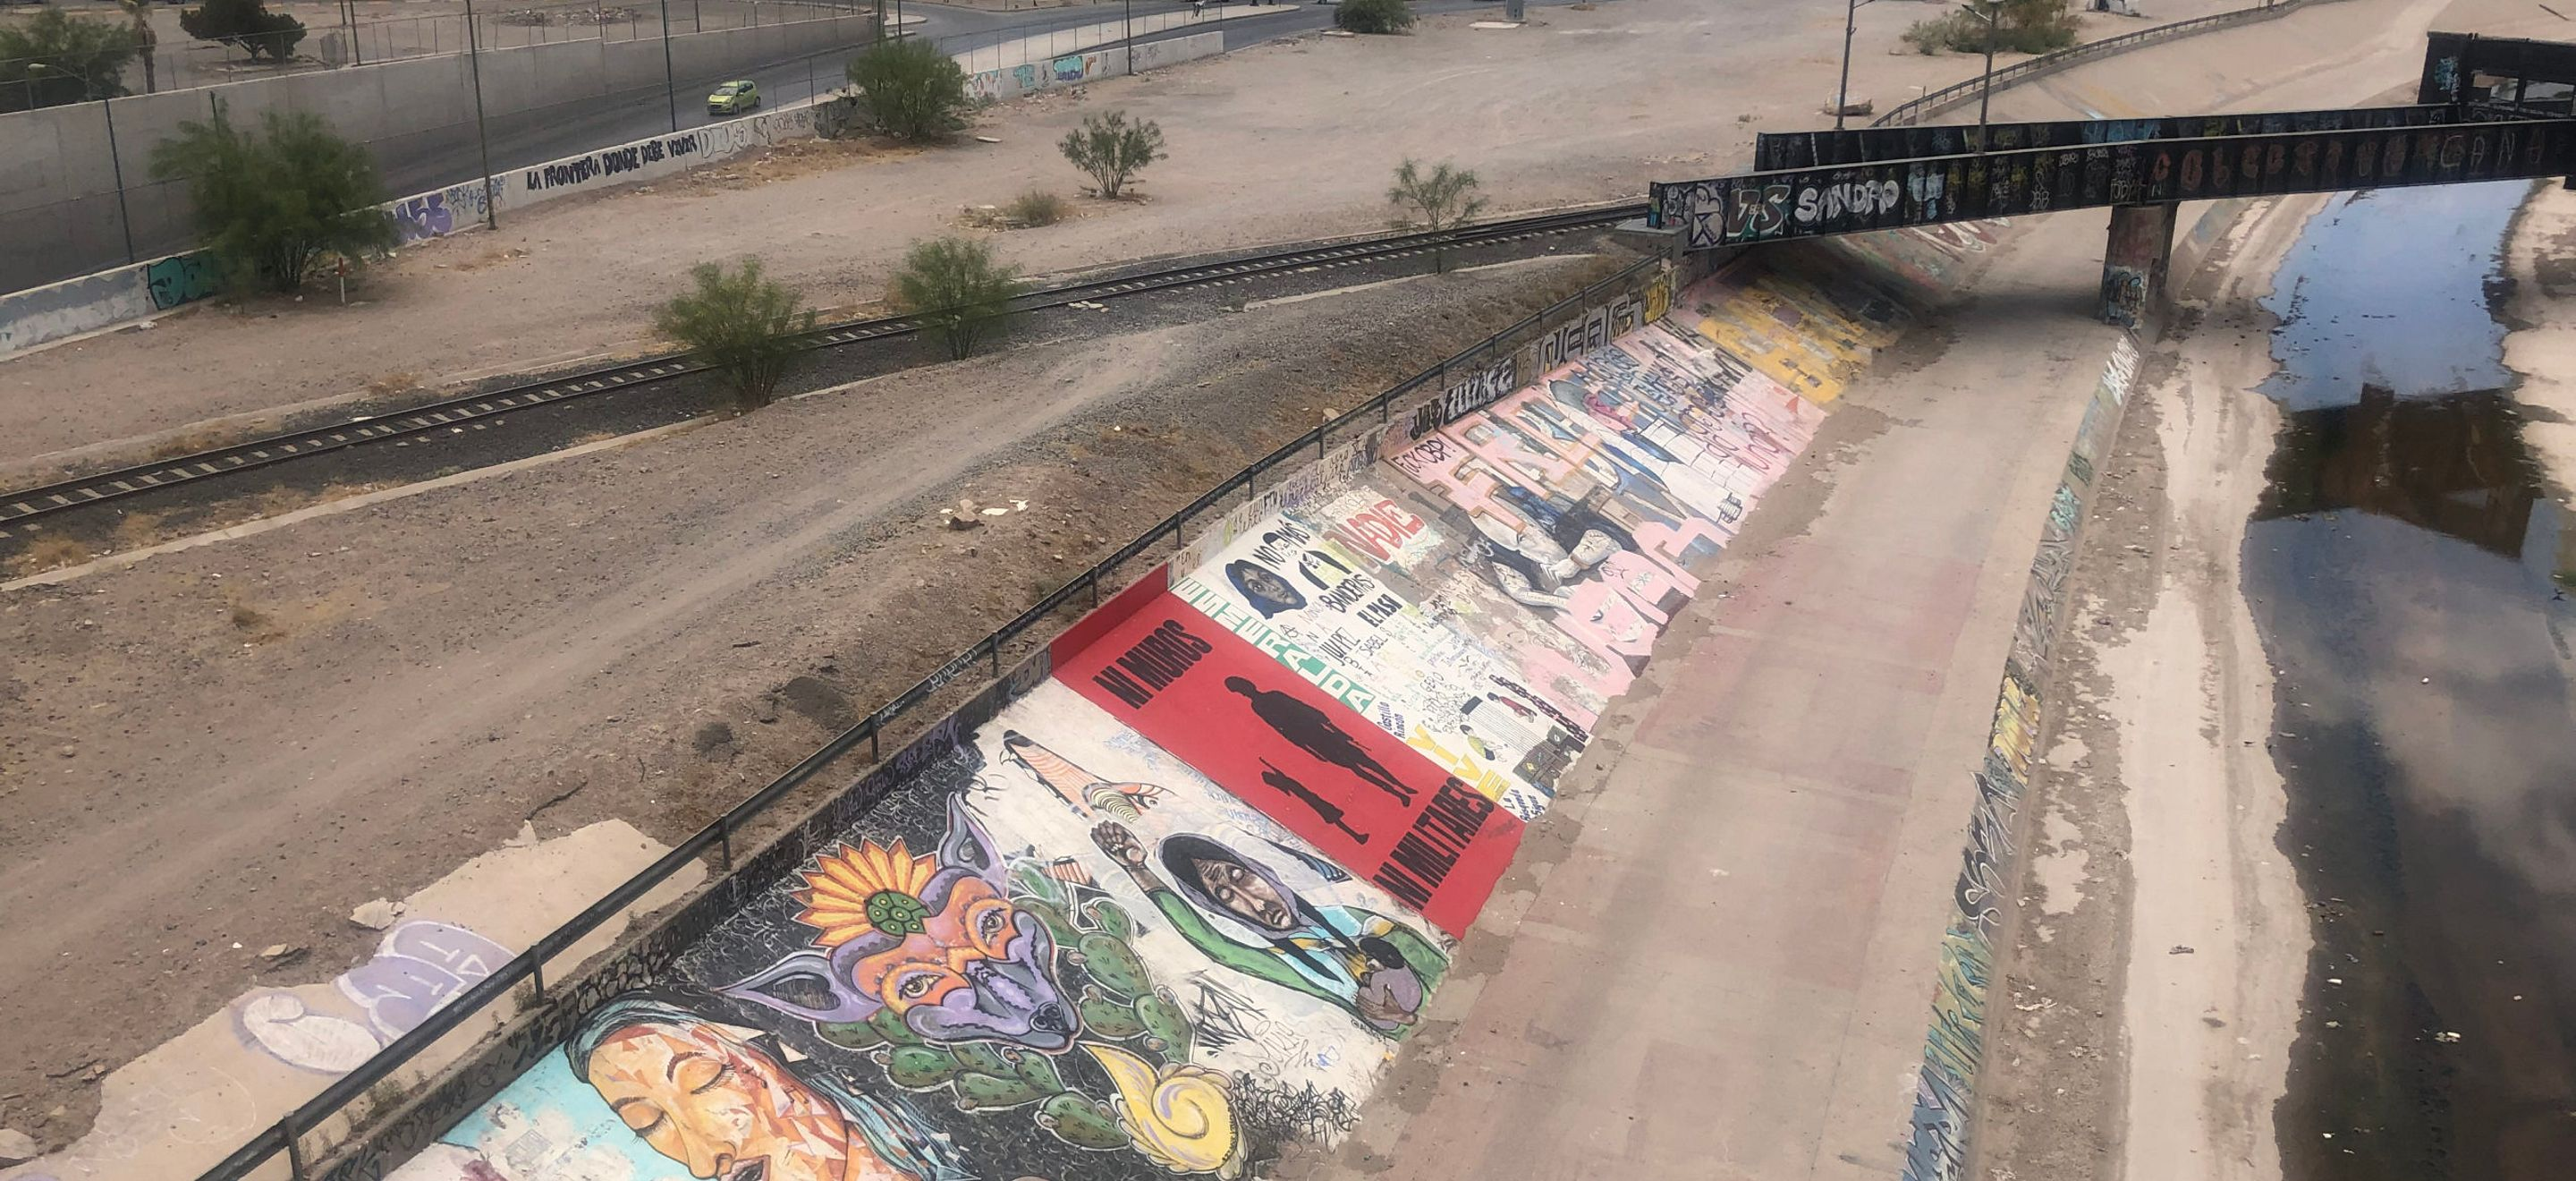 A photo from above a bank of political and cultural mural artwork. The artwork covers a sloped wall under a railway overpass.